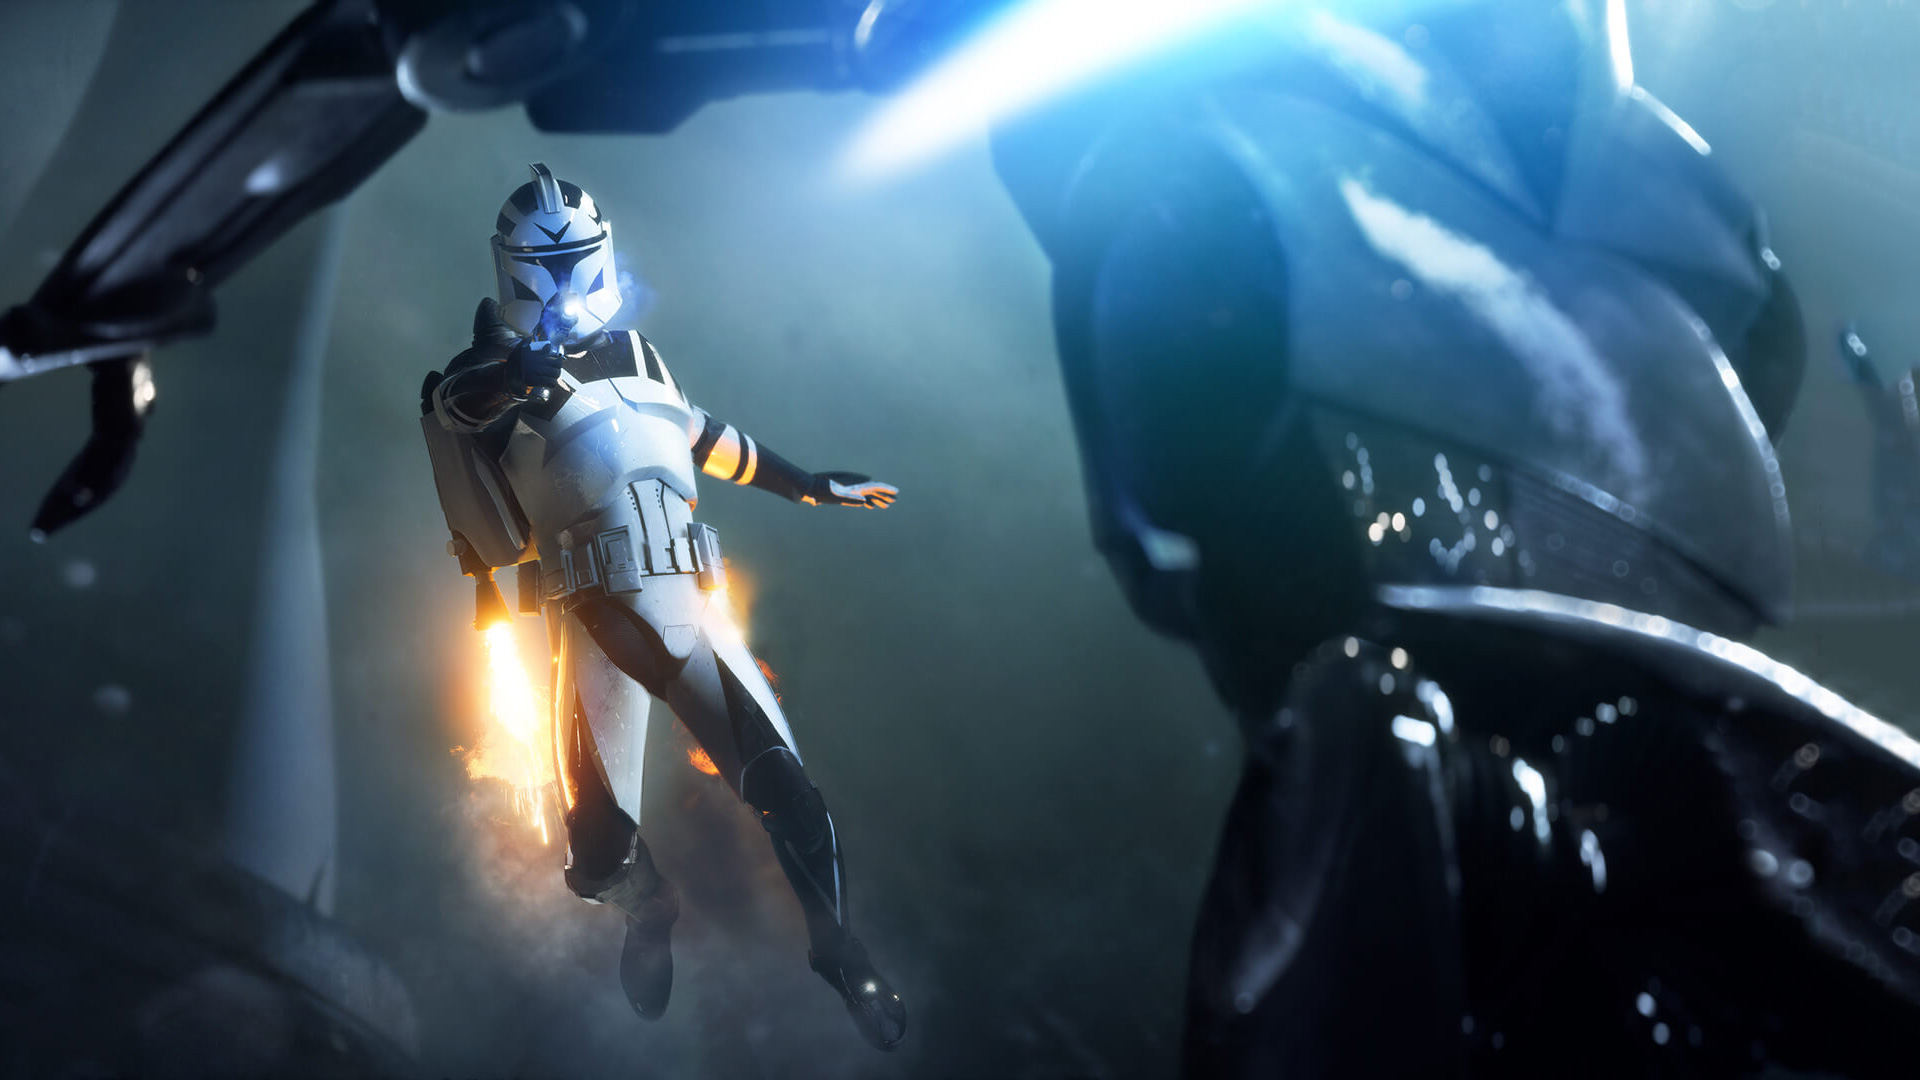 Star Wars Battlefront 2 Wallpaper 4k 1920x1080 Wallpaper Teahub Io